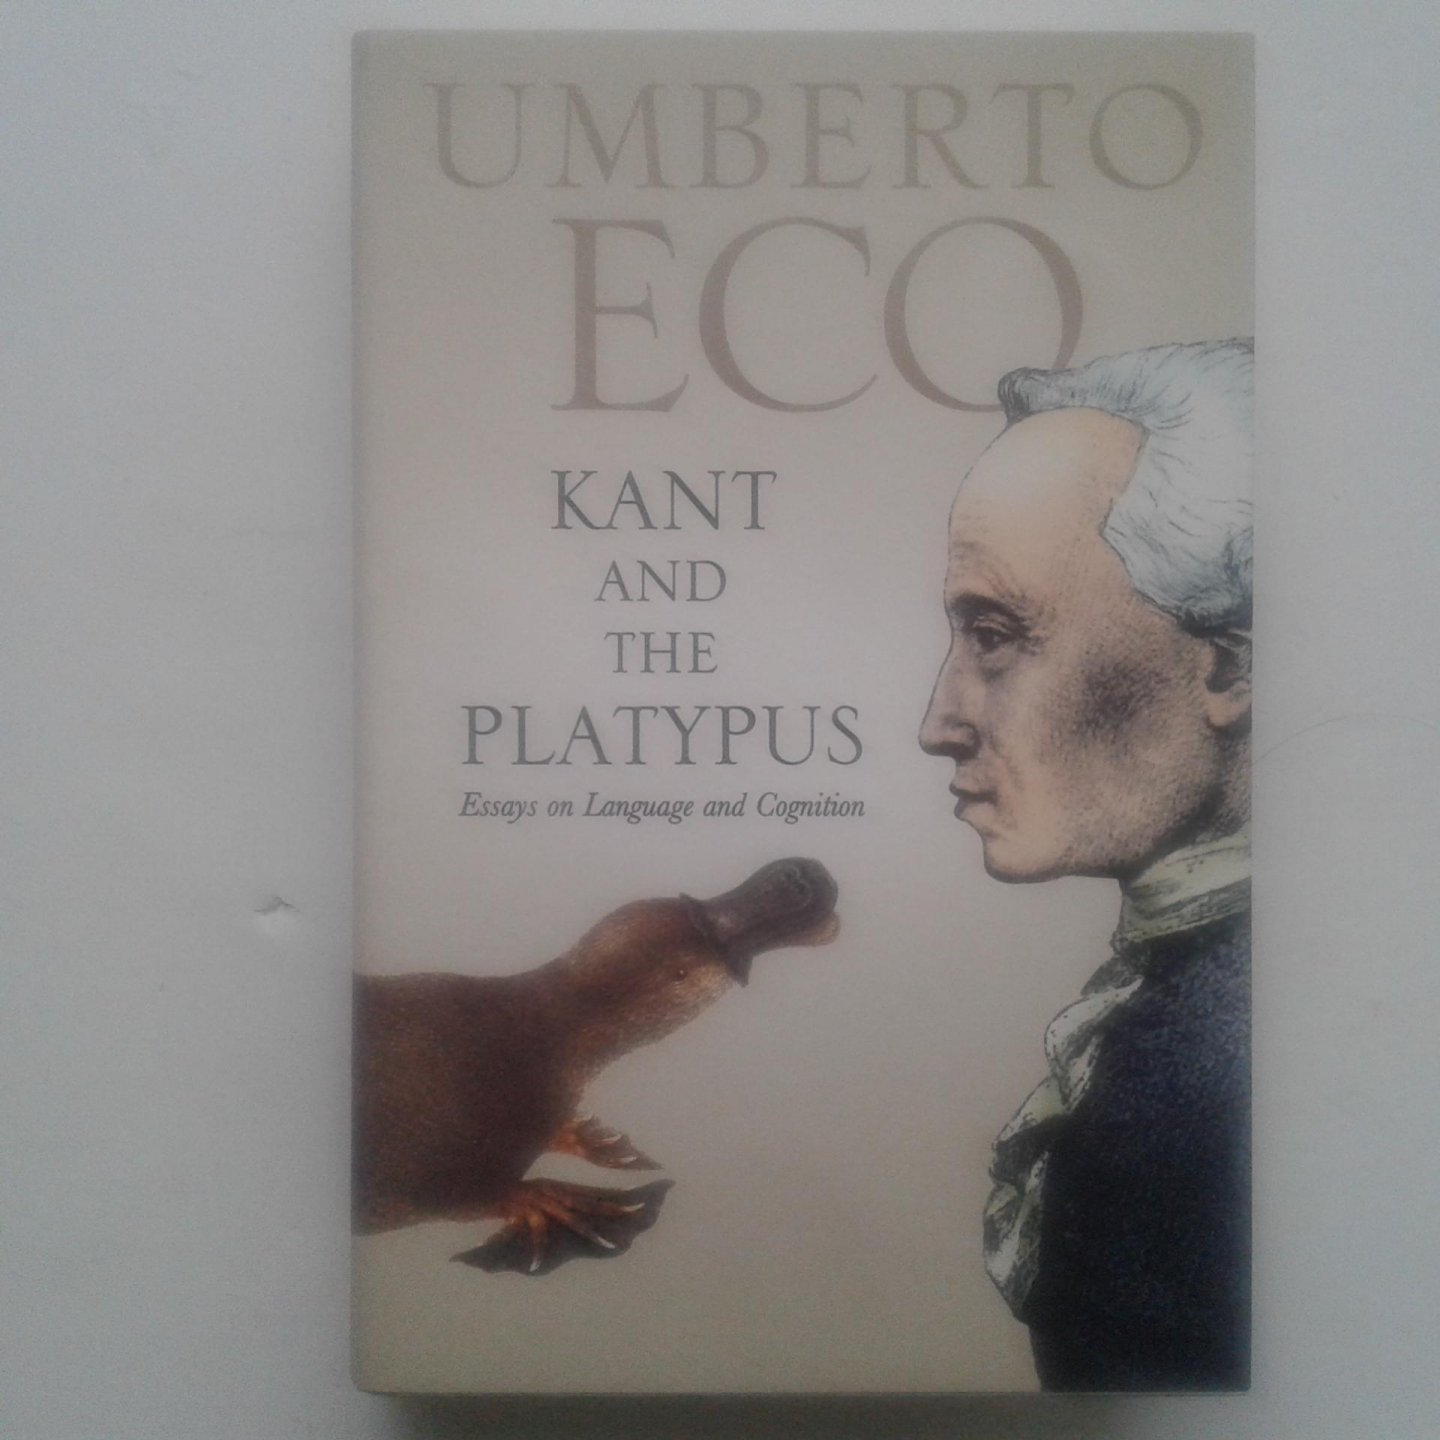 kant and the platypus essay on language and cognition Kant and the platypus: essays on language and cognition by mcewen, alastair and a great selection of similar used, new and collectible books available now at.